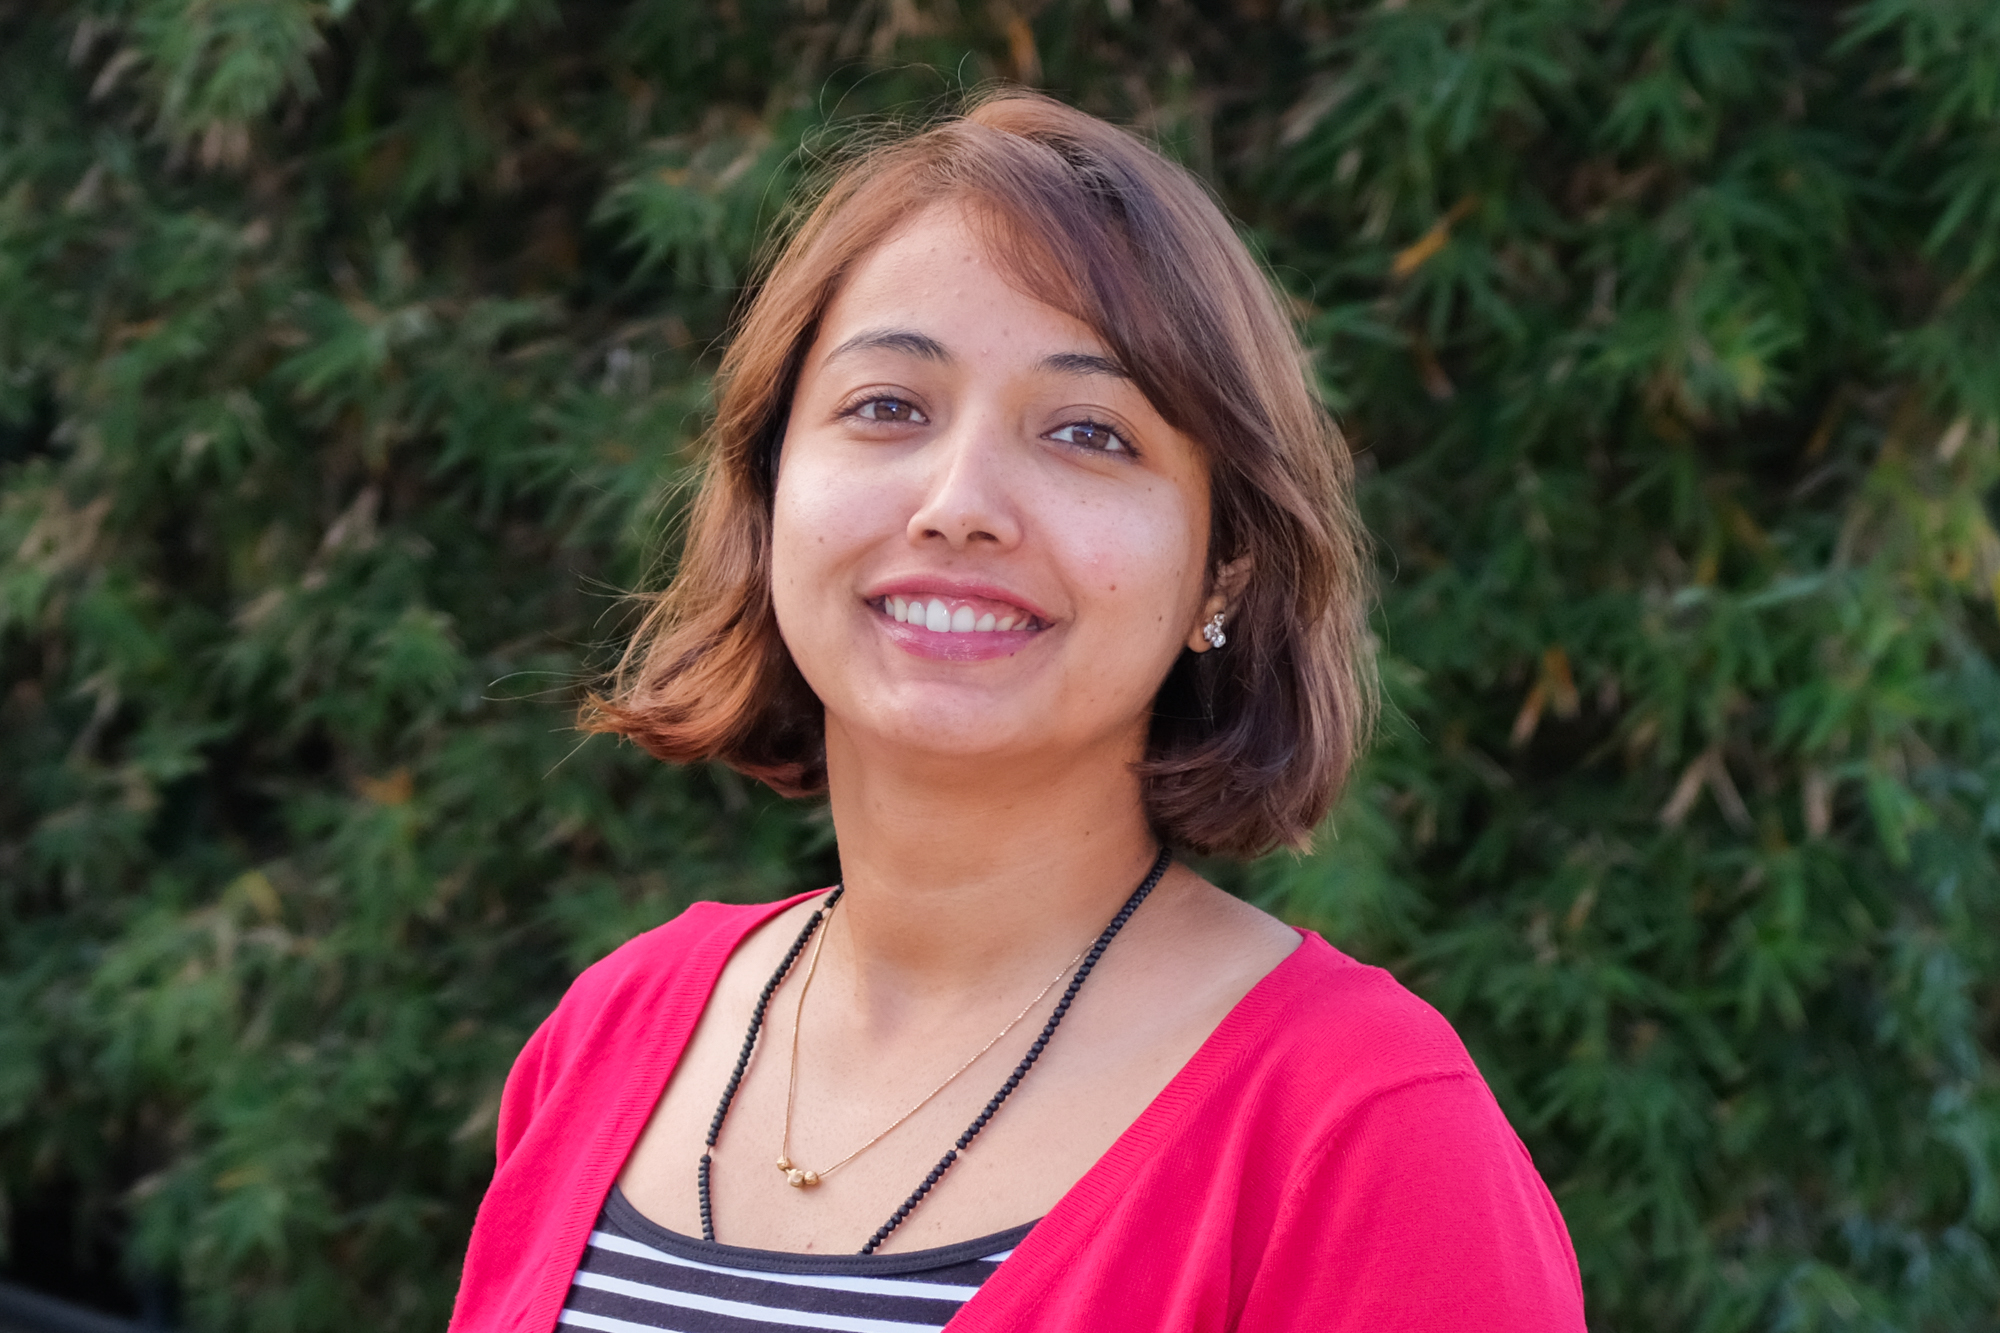 Shikha Bhattarai, Senior Admin & Finance Officer